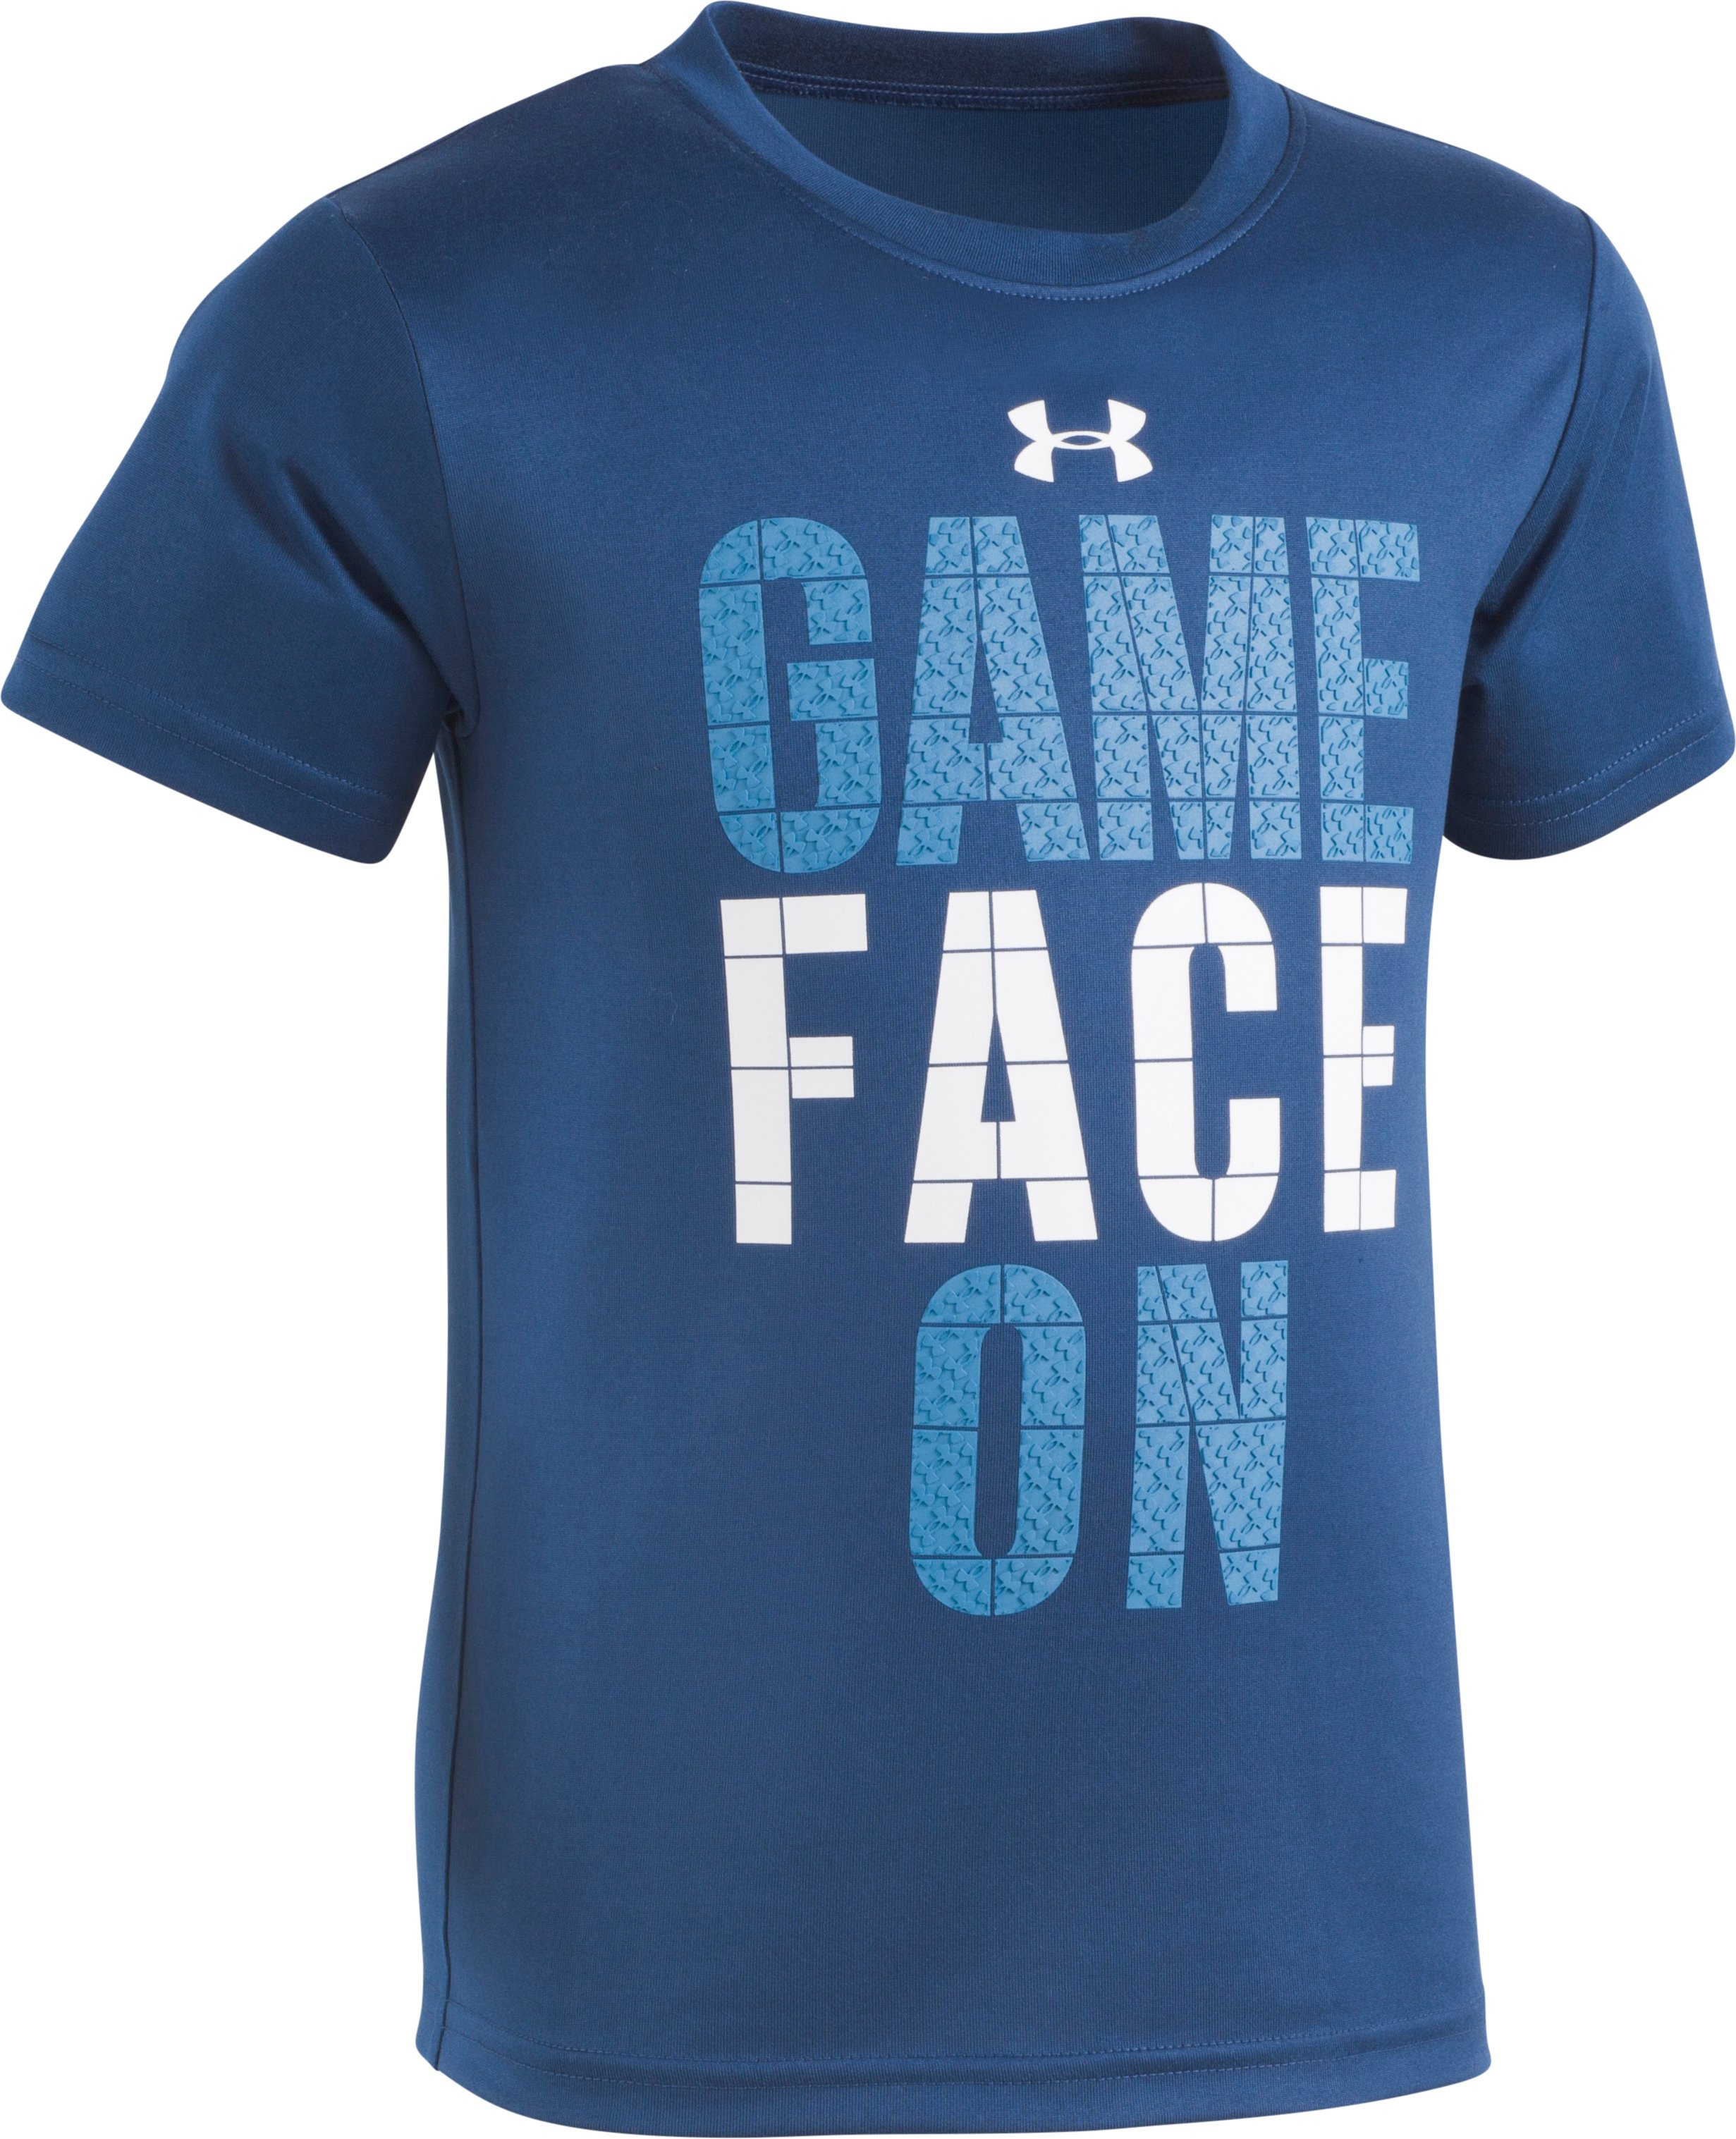 Boys' Pre-School UA Game Face On Short Sleeve Shirt, BLACKOUT NAVY